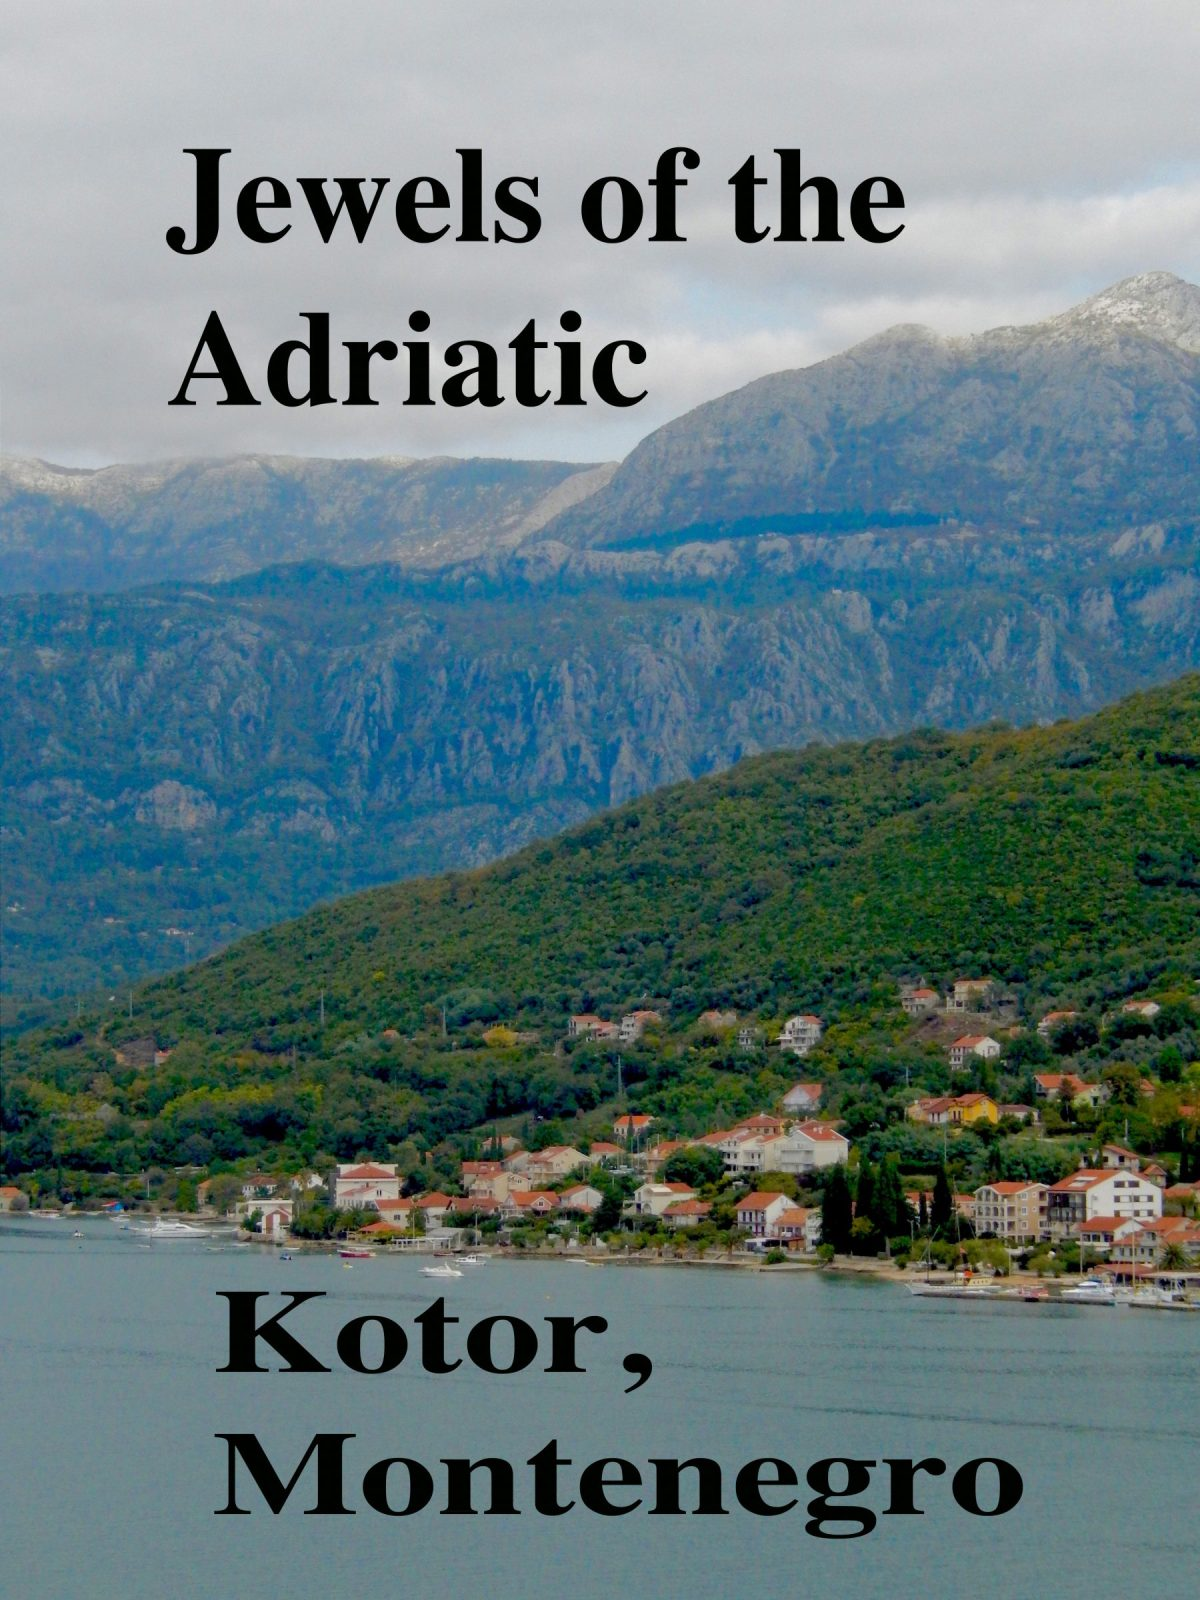 The Old Port City of Kotor,Montenegro